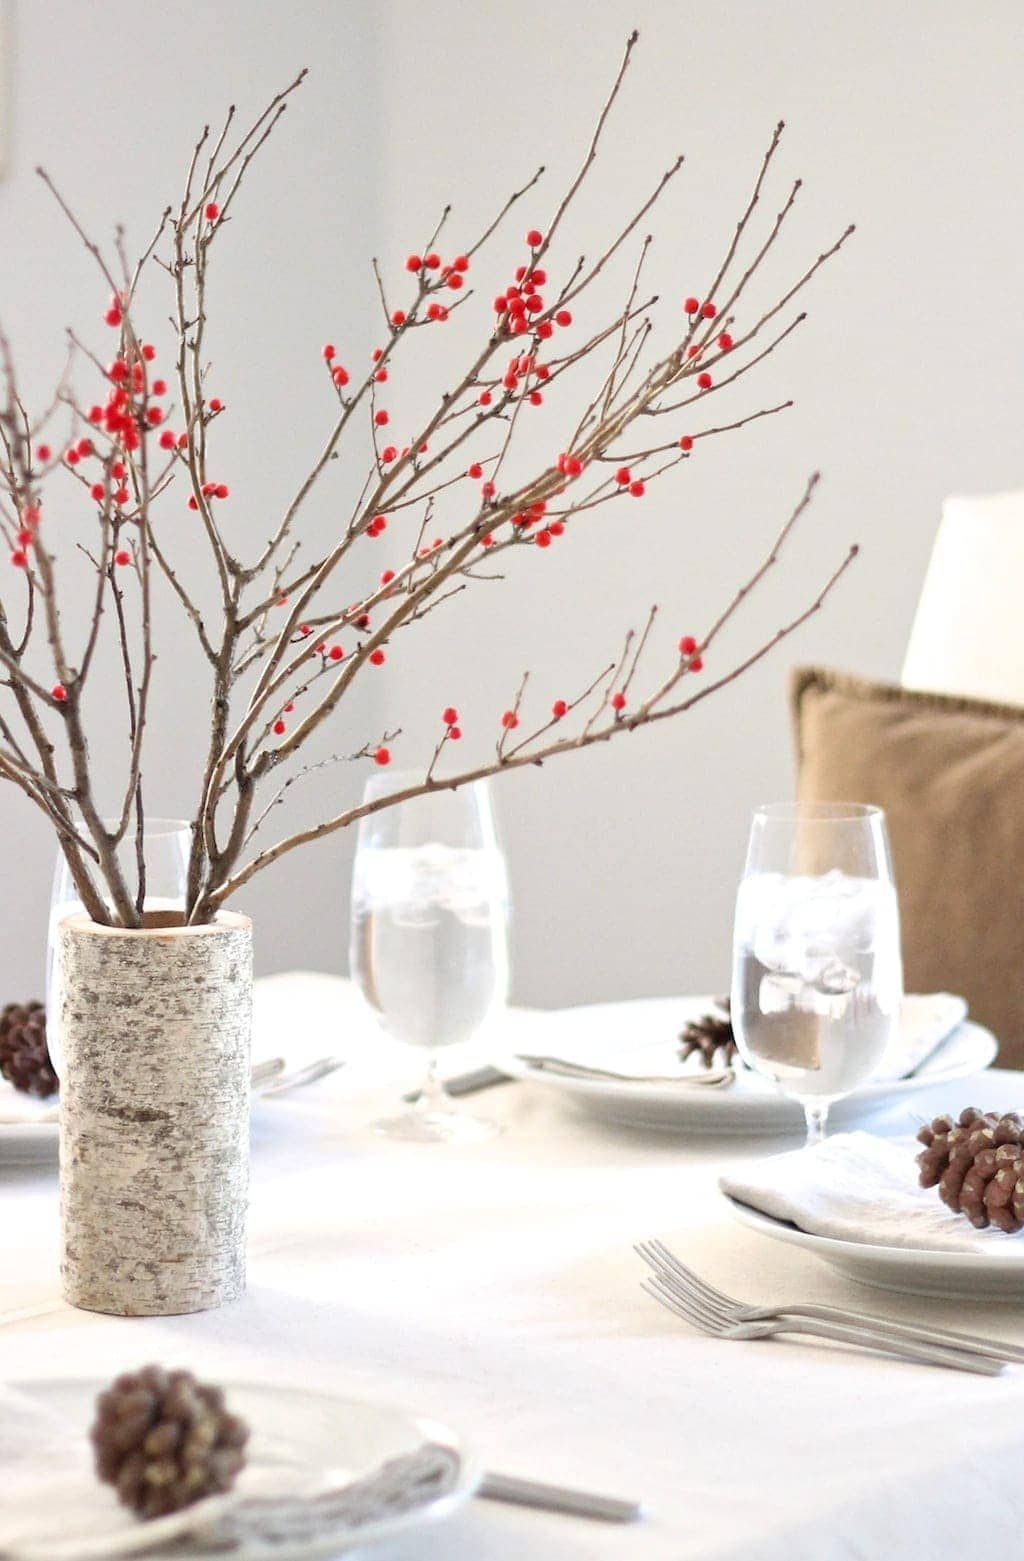 Berry & Birch Christmas Table setting